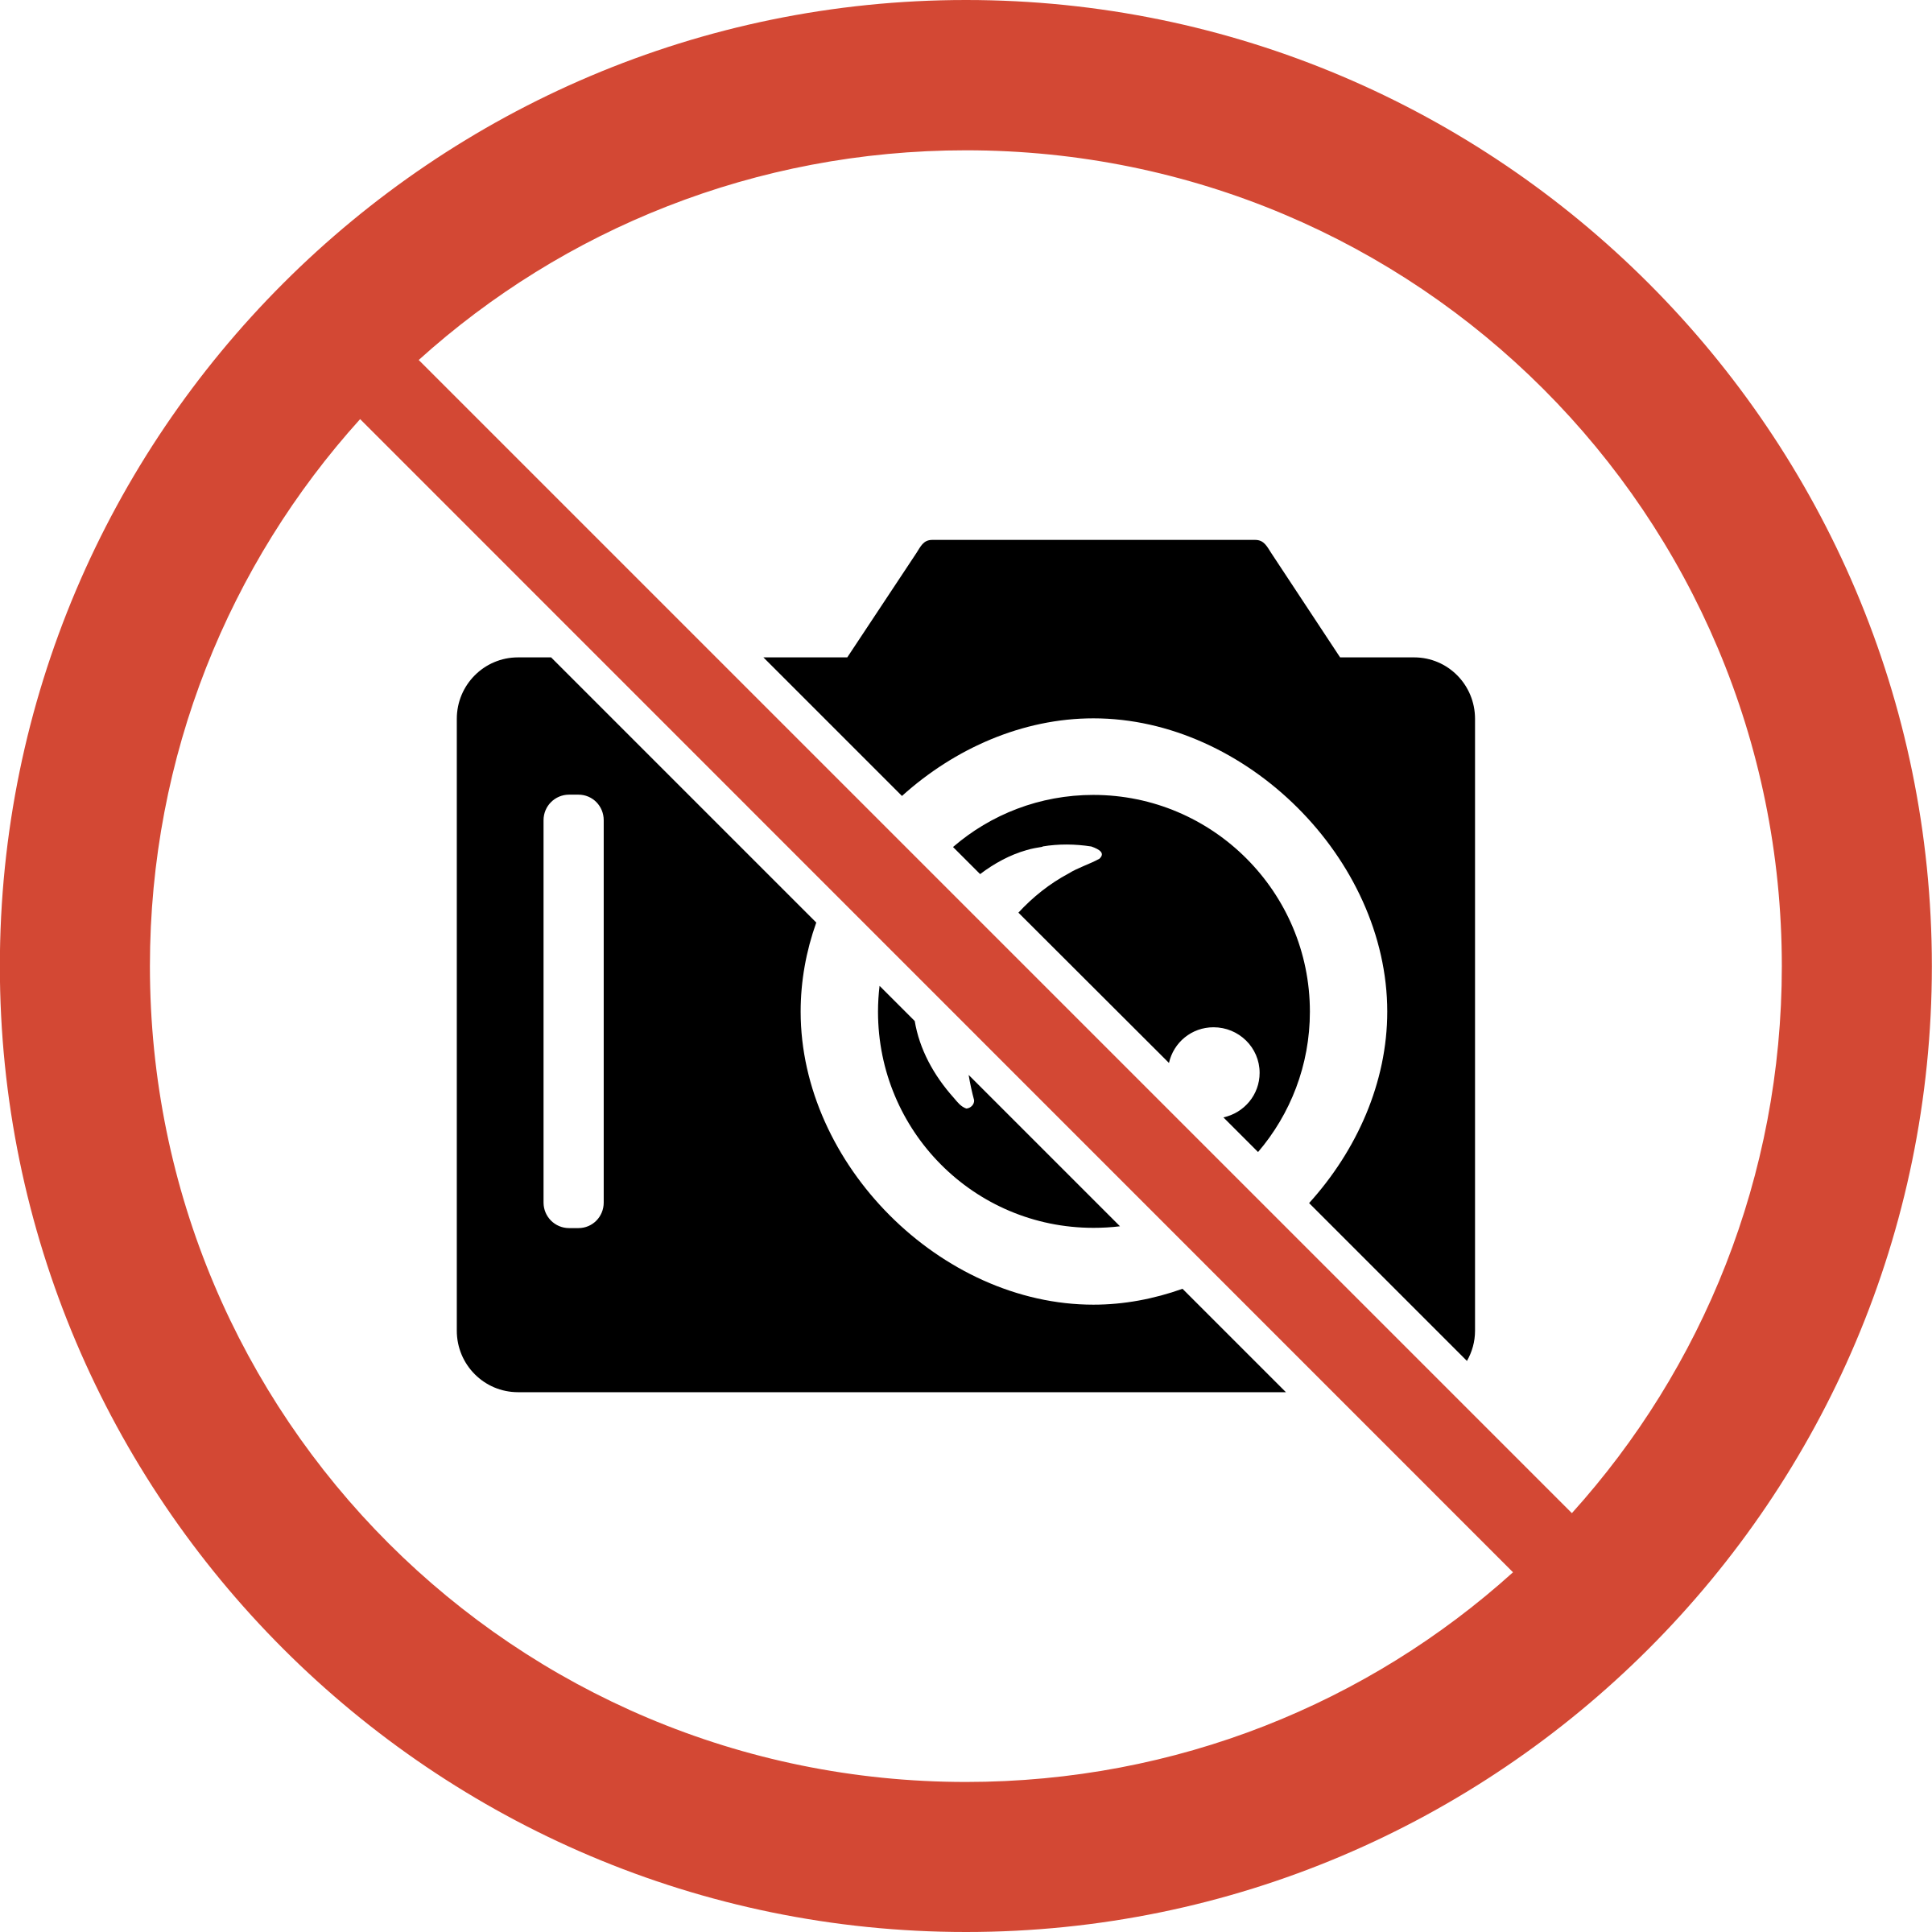 No Camera Sign by libberry